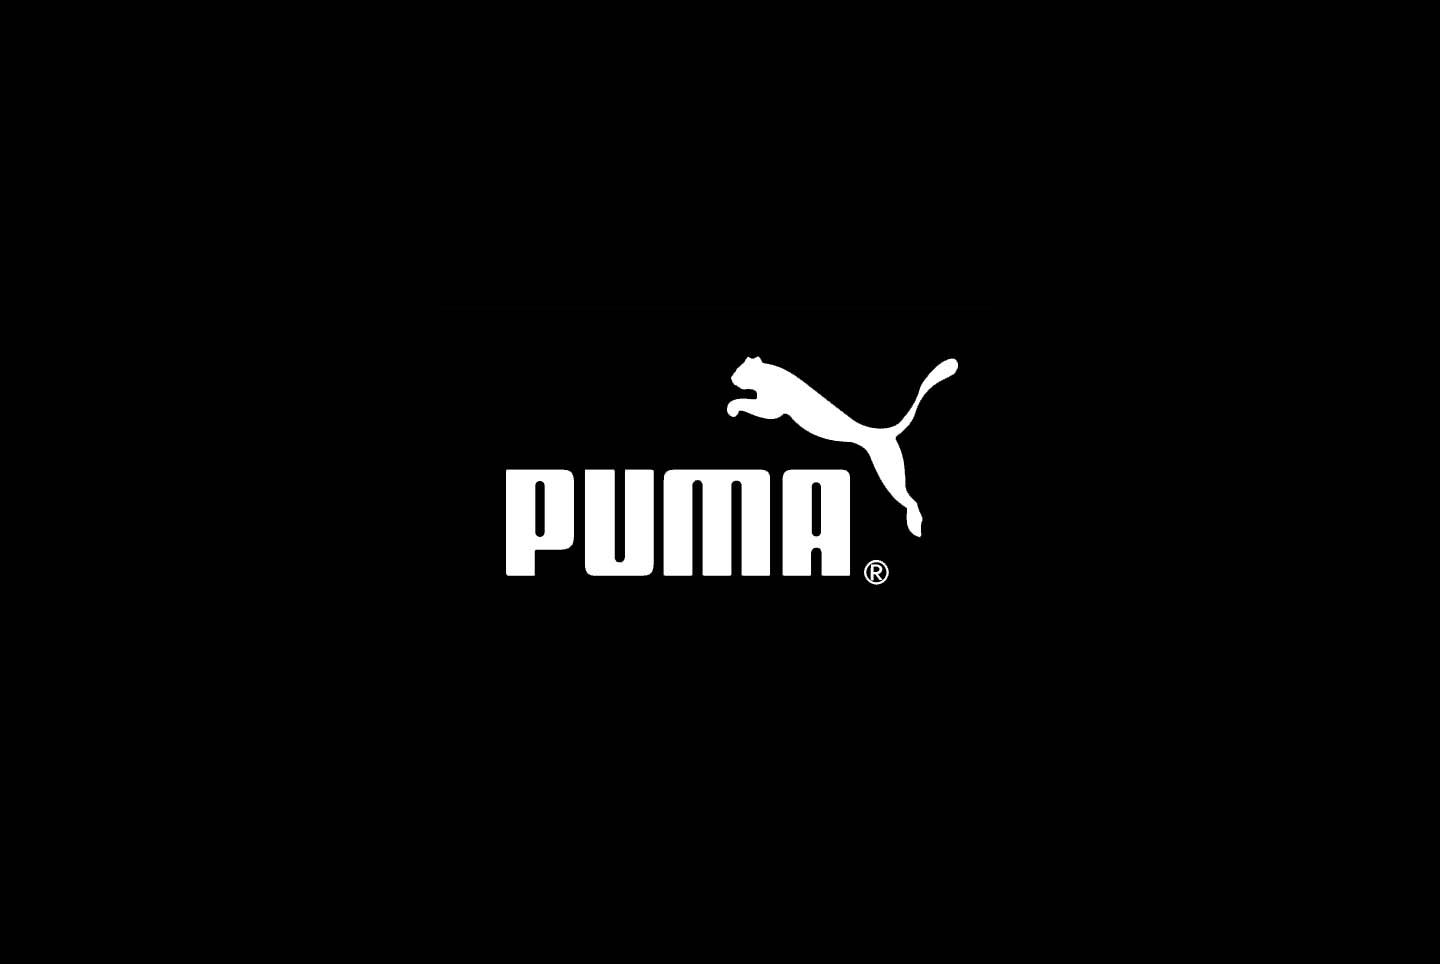 puma soccer wallpapers images - photo #37